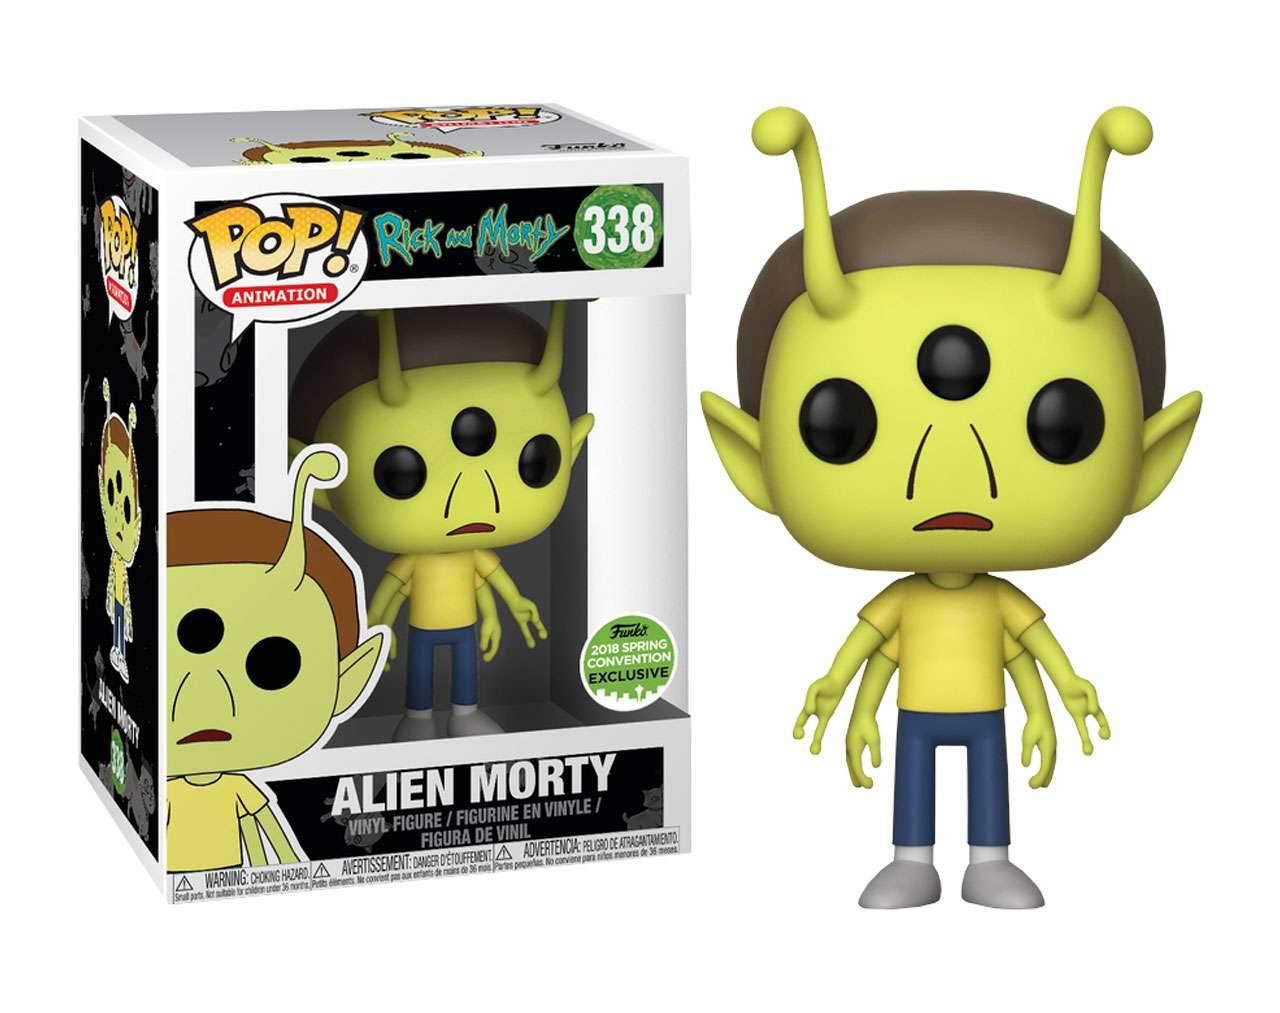 Alien Morty (ECCC 2018) Pop! Vinyl